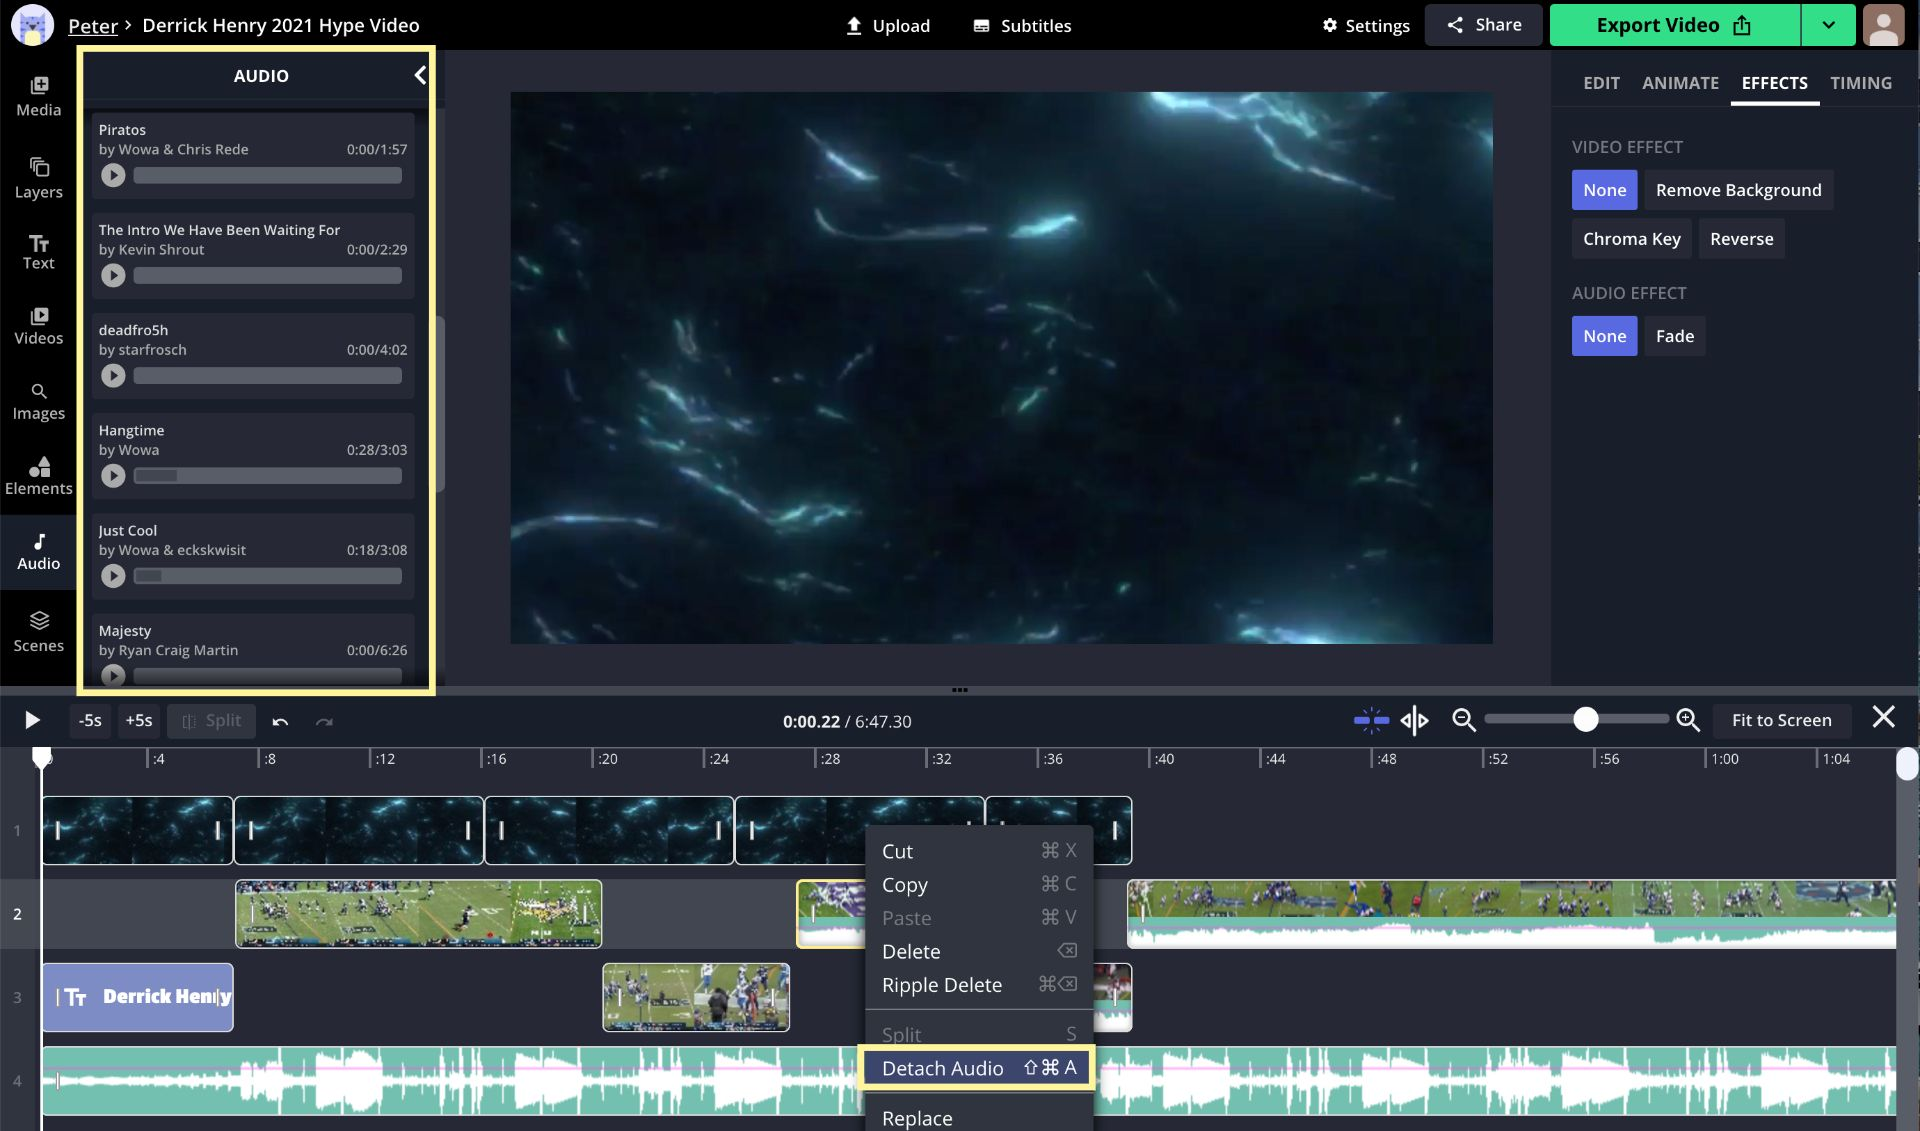 A screenshot showing how to add and edit music in the Kapwing Studio.